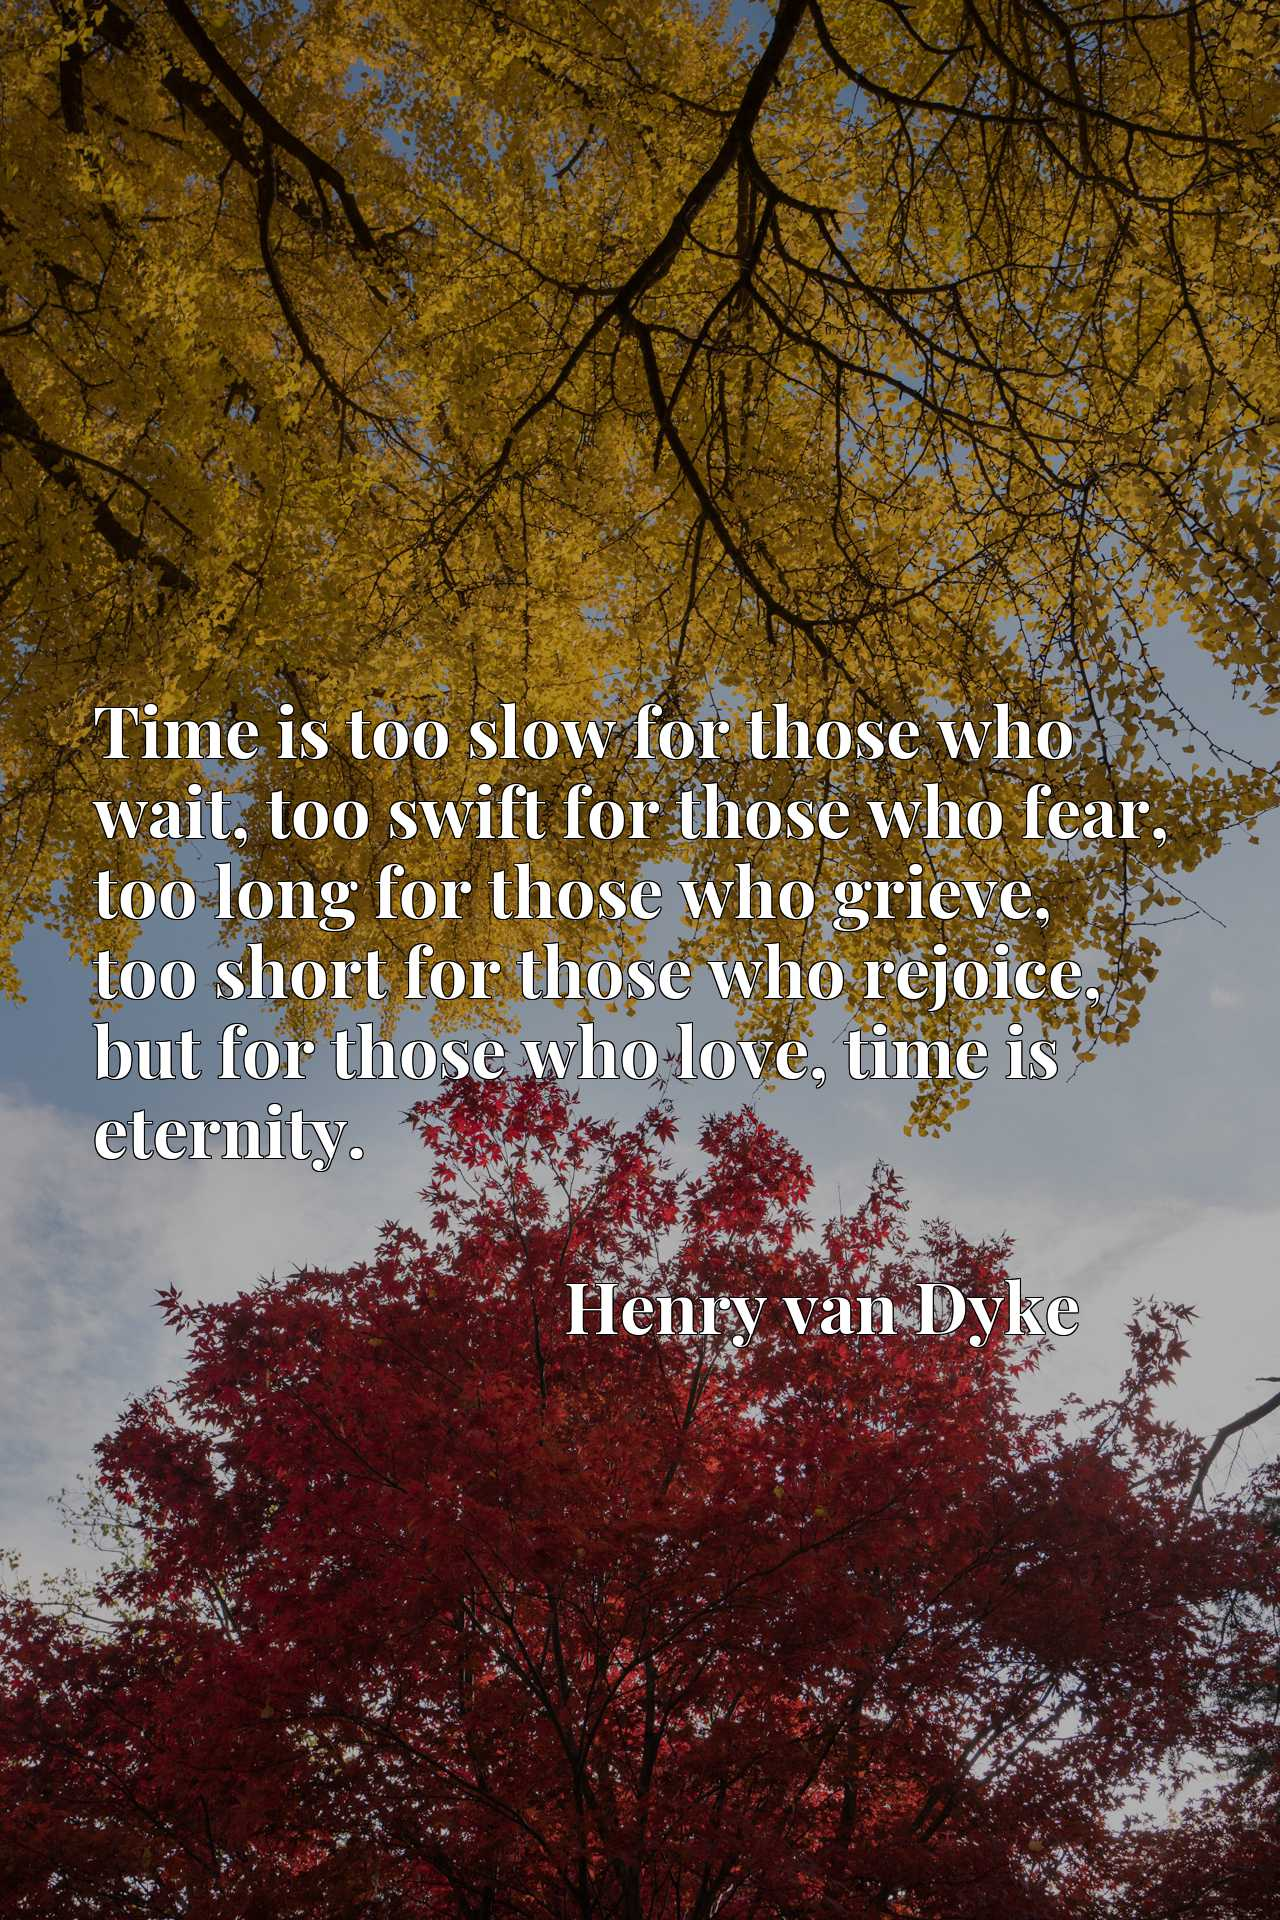 Time is too slow for those who wait, too swift for those who fear, too long for those who grieve, too short for those who rejoice, but for those who love, time is eternity.